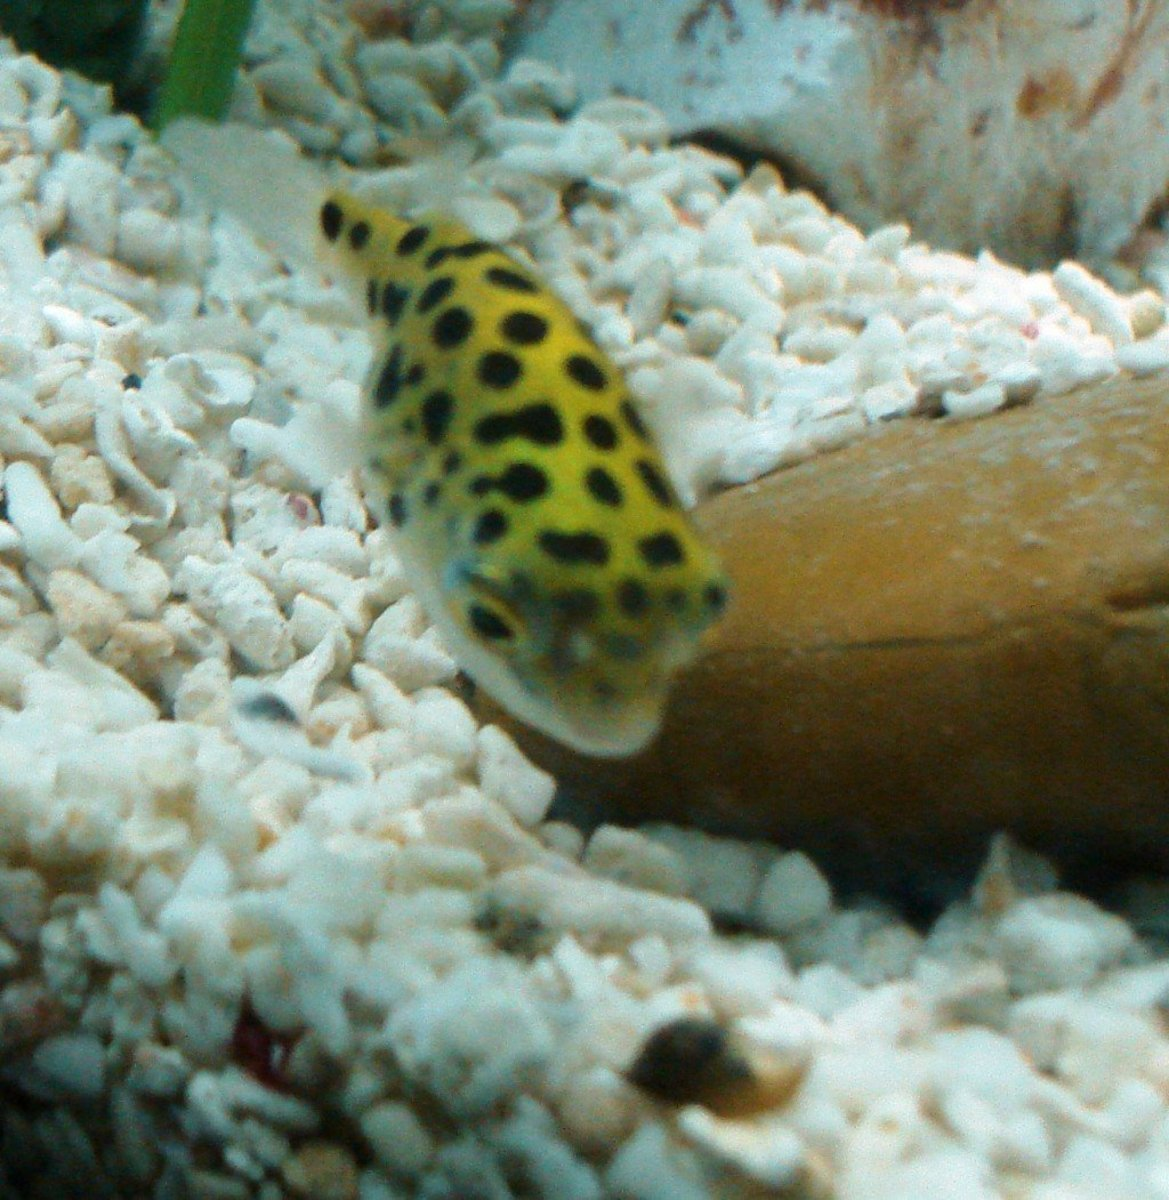 Green Spotted Puffer Fish Care, Feeding and Tank Setup